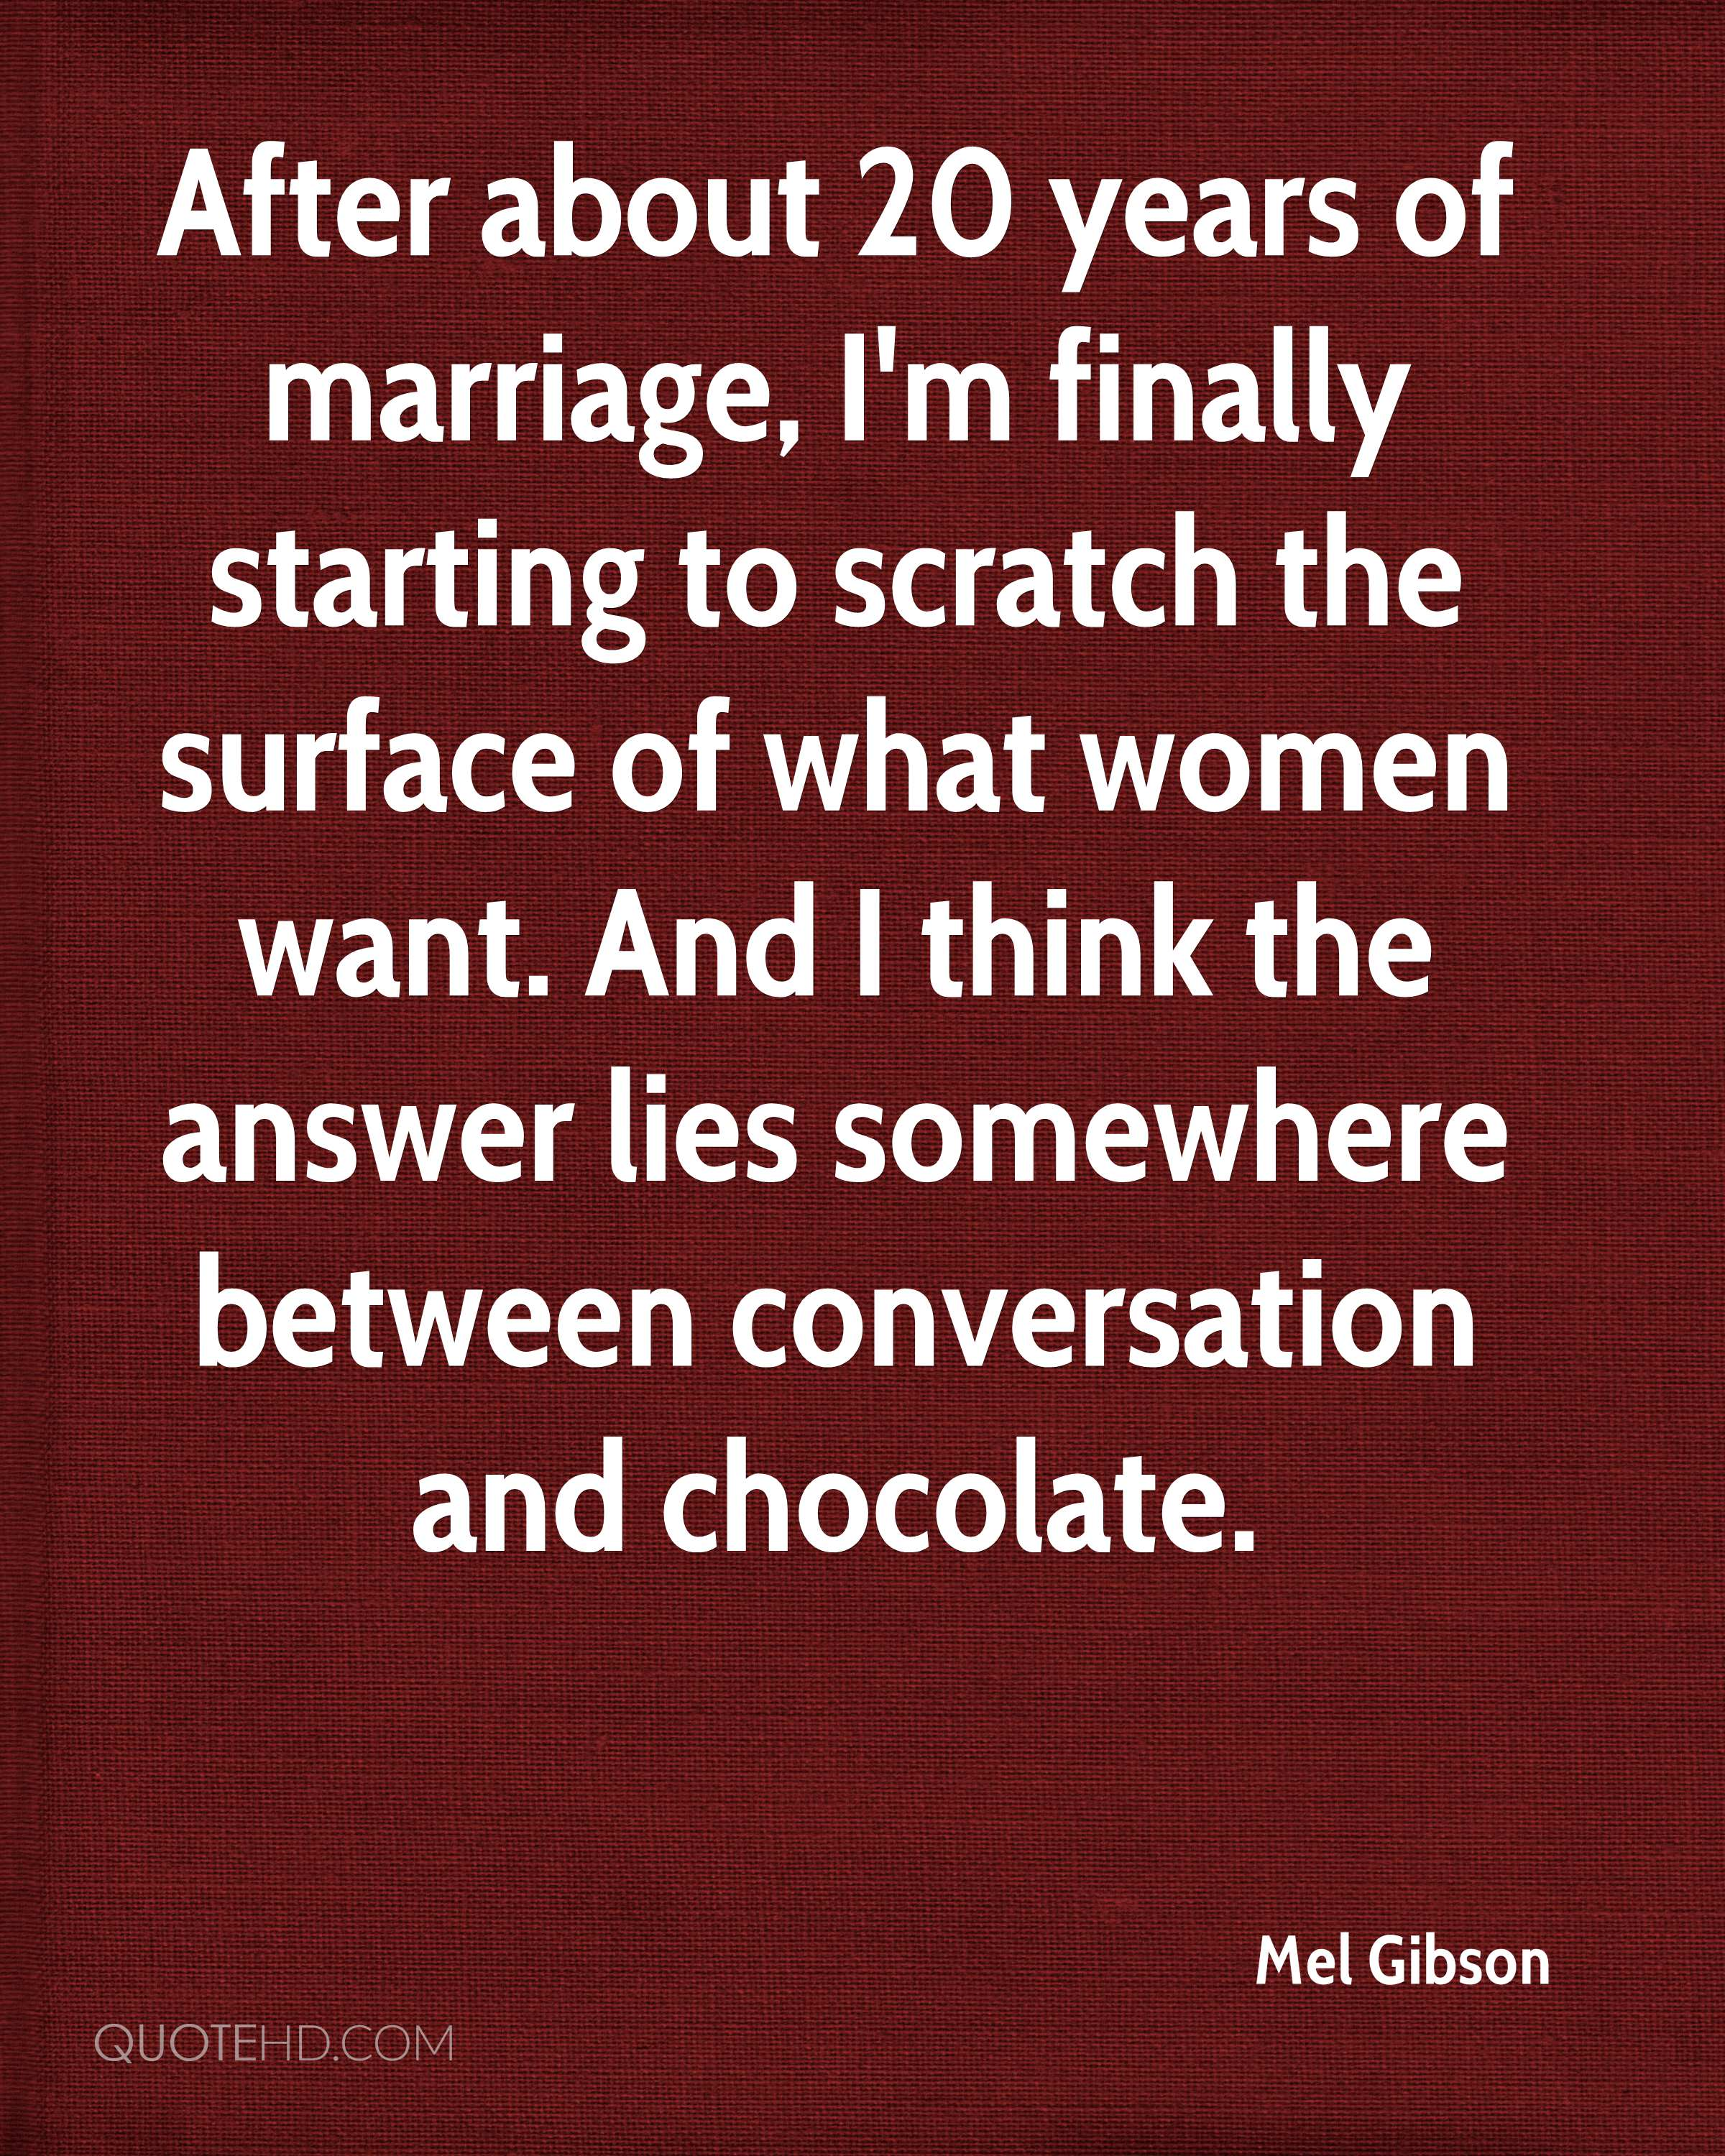 Quotes About 20 Years Of Marriage: Mel Gibson Marriage Quotes